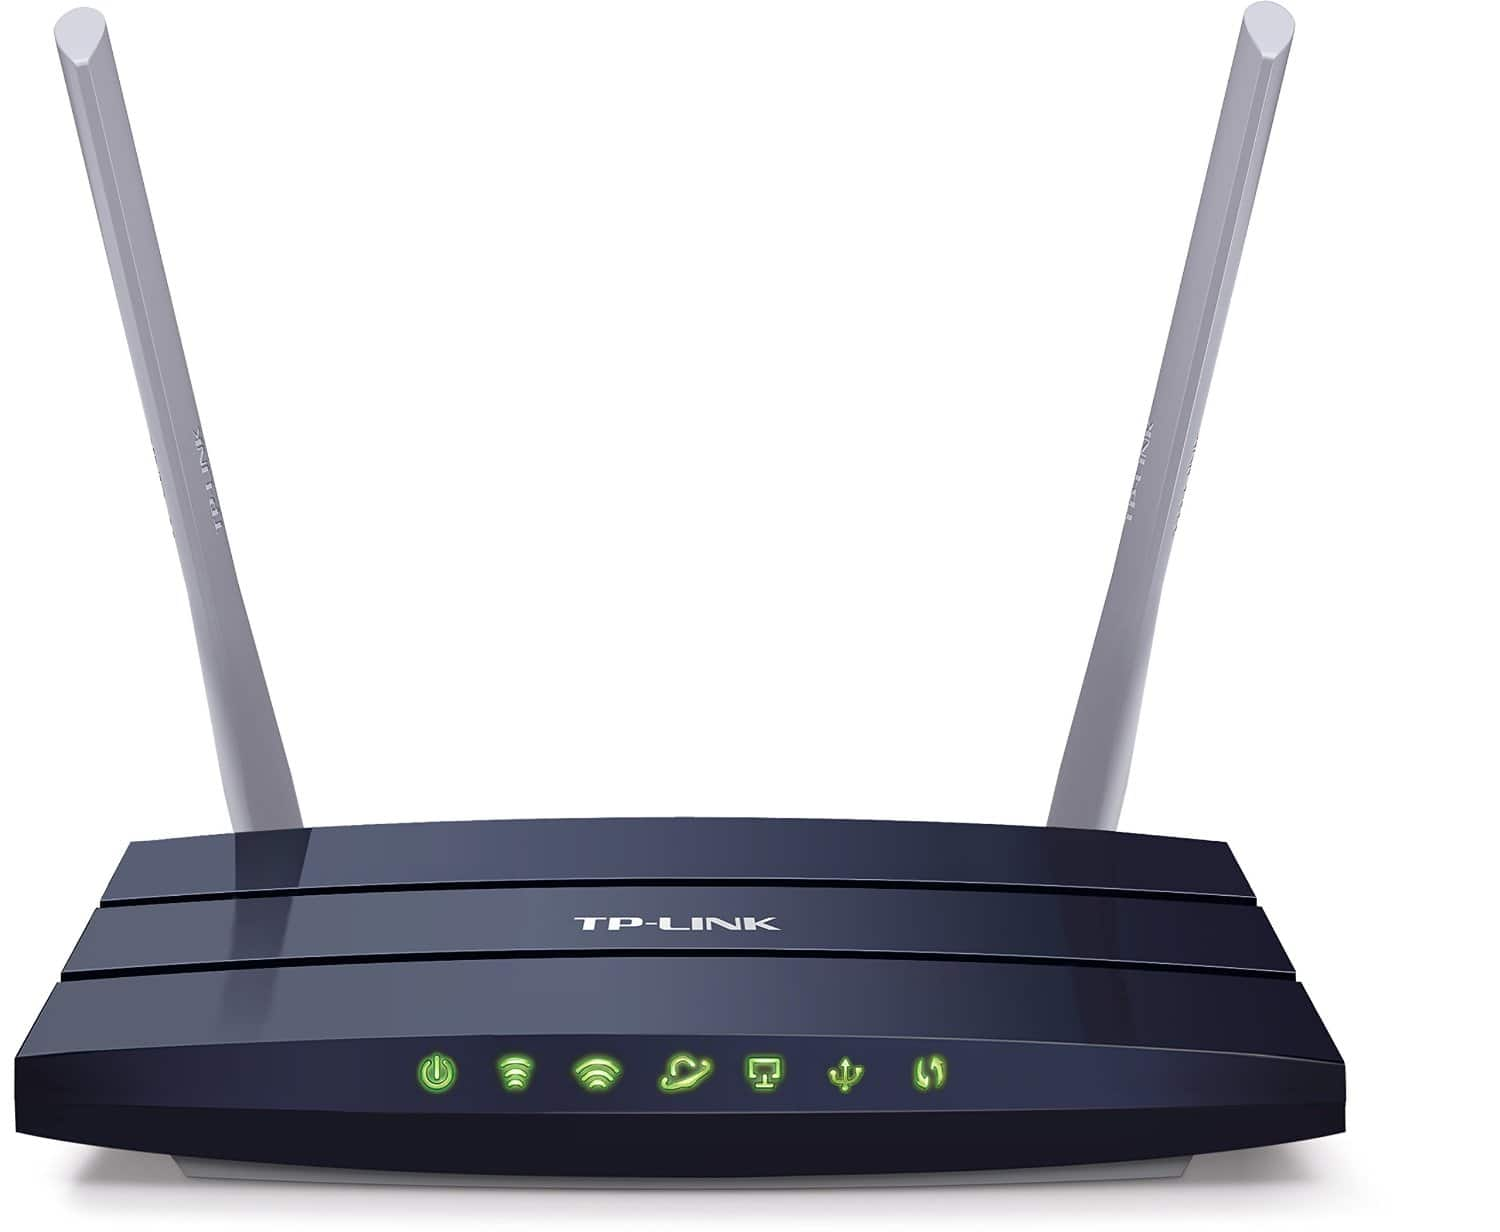 TP-Link AC1200 Wireless Wi-Fi Dual Band Fast Ethernet Router (Archer C50) $42.00 @ Amazon.com W/ coupon + Free Same Day Shipping!